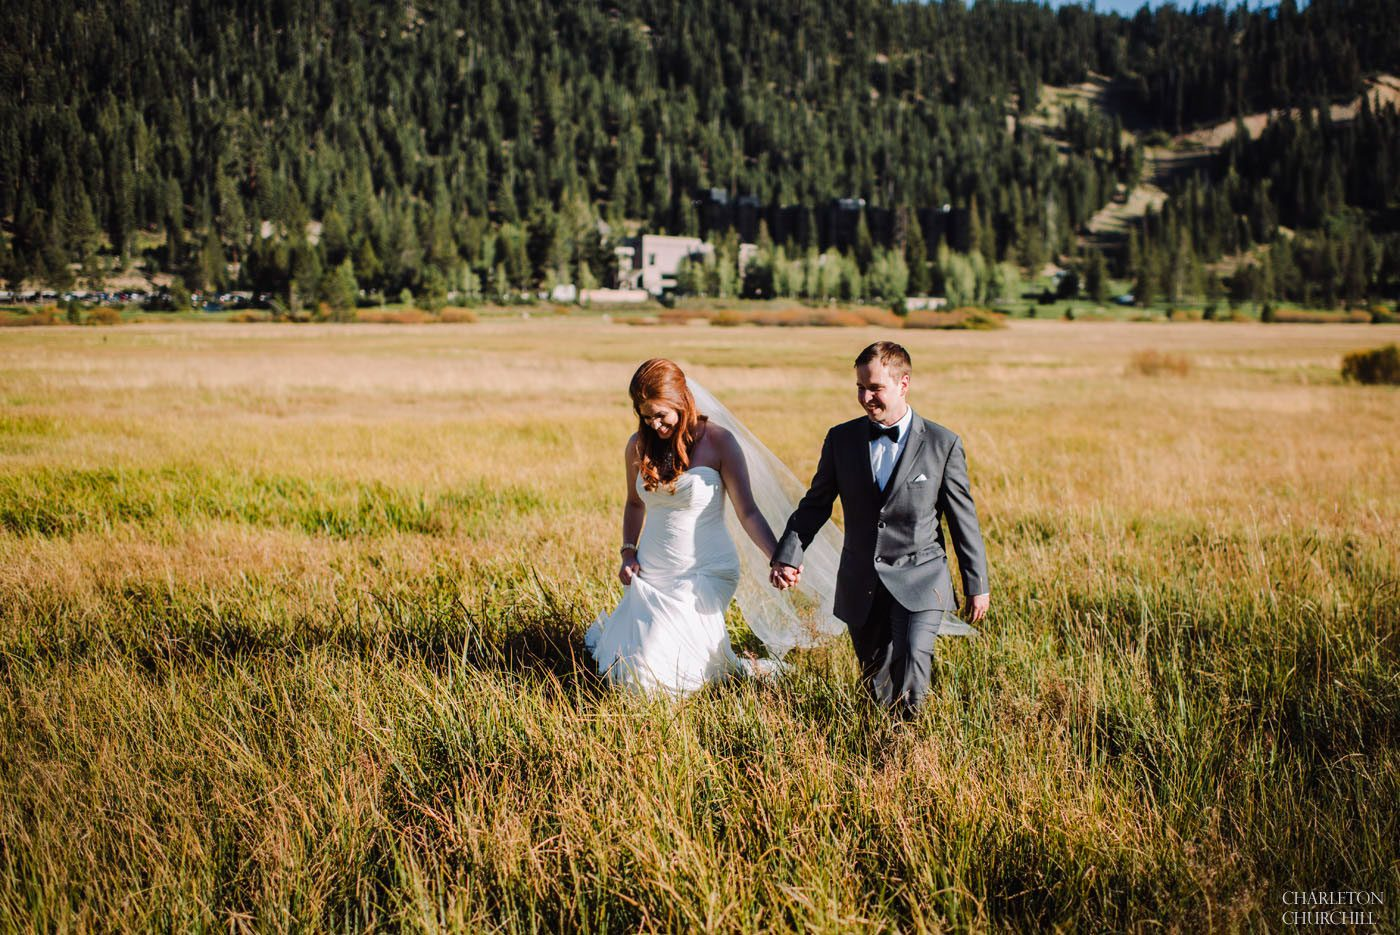 wedding venue squaw valley in olympic valley for engaged couples